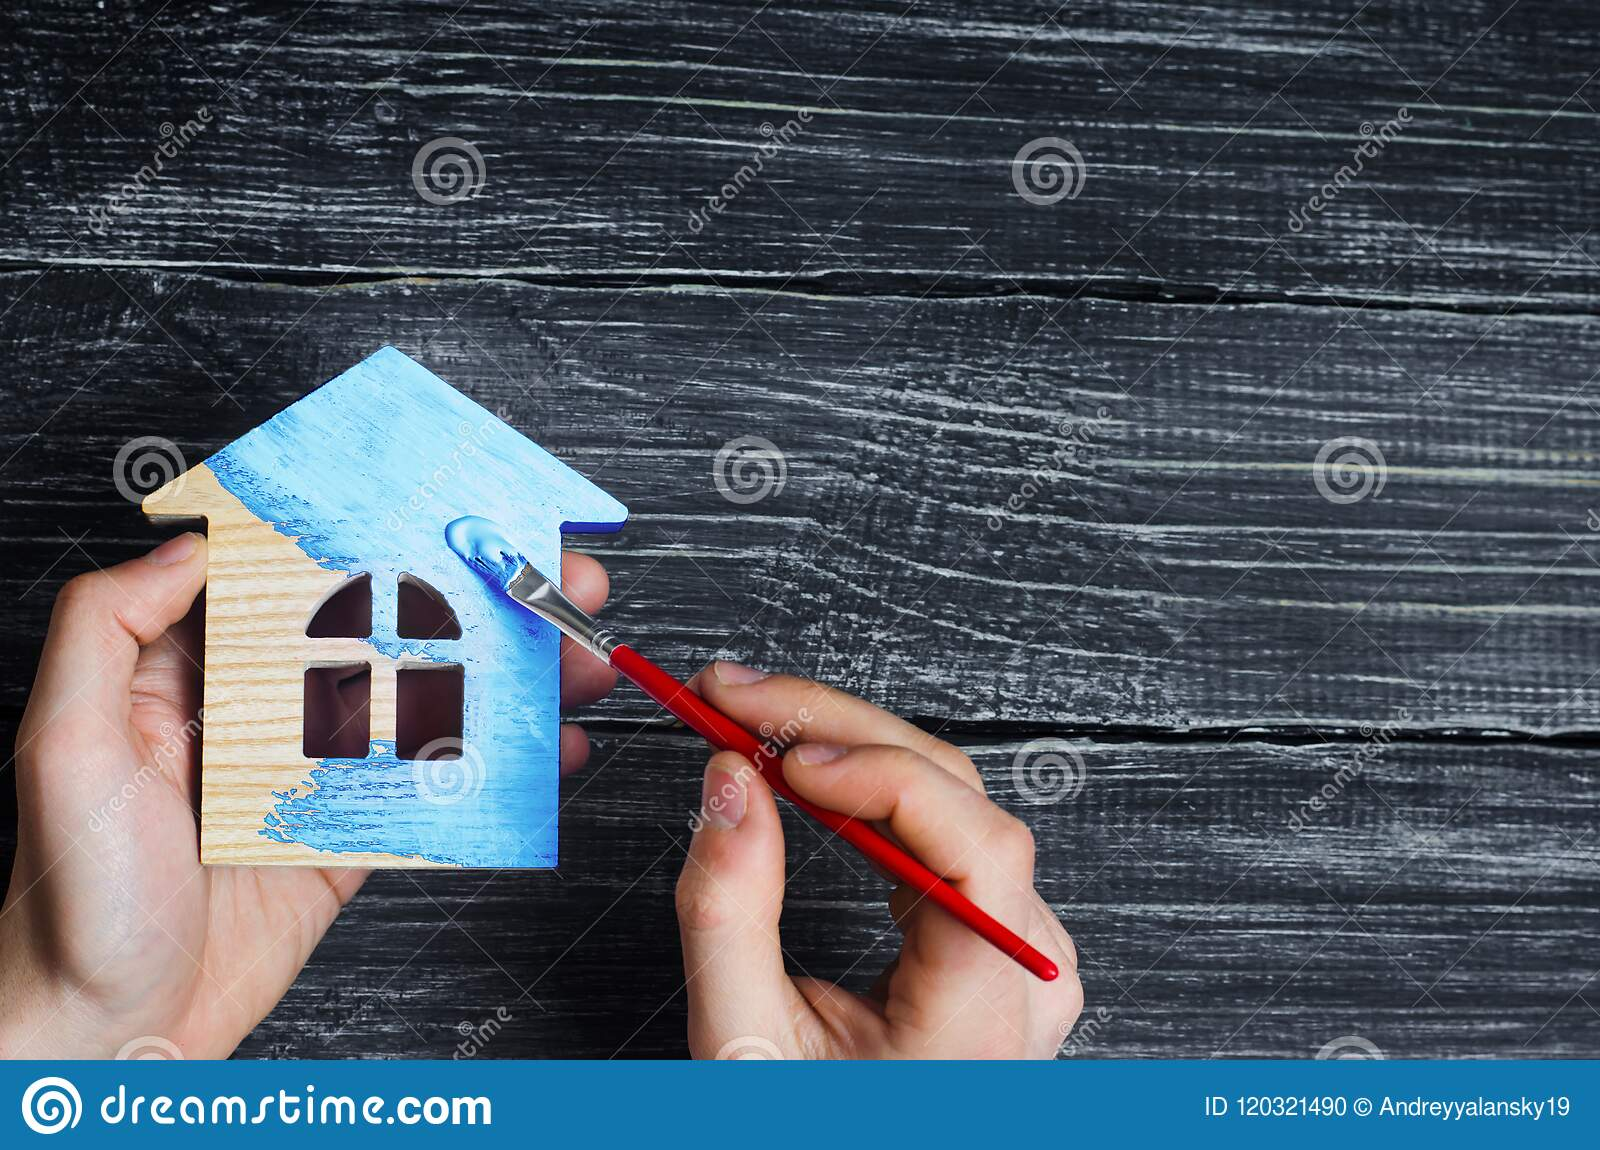 Hand paints a house in to blue color. Concept of repair, hobby, work. Repair and painting of wooden house figurines. Toy house